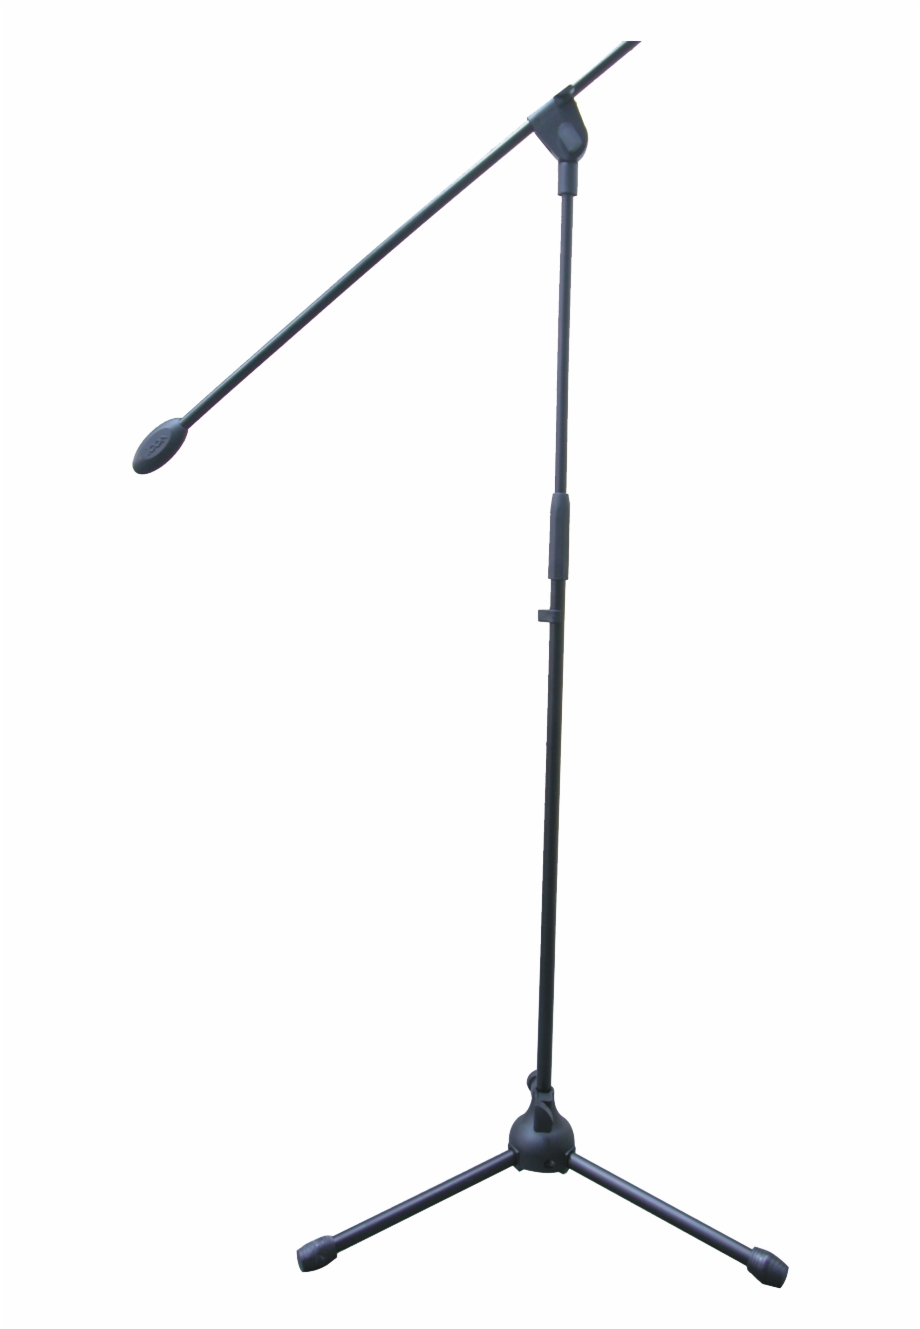 Mic Stand Icon Png Free PNG Images & Clipart Download #83155.